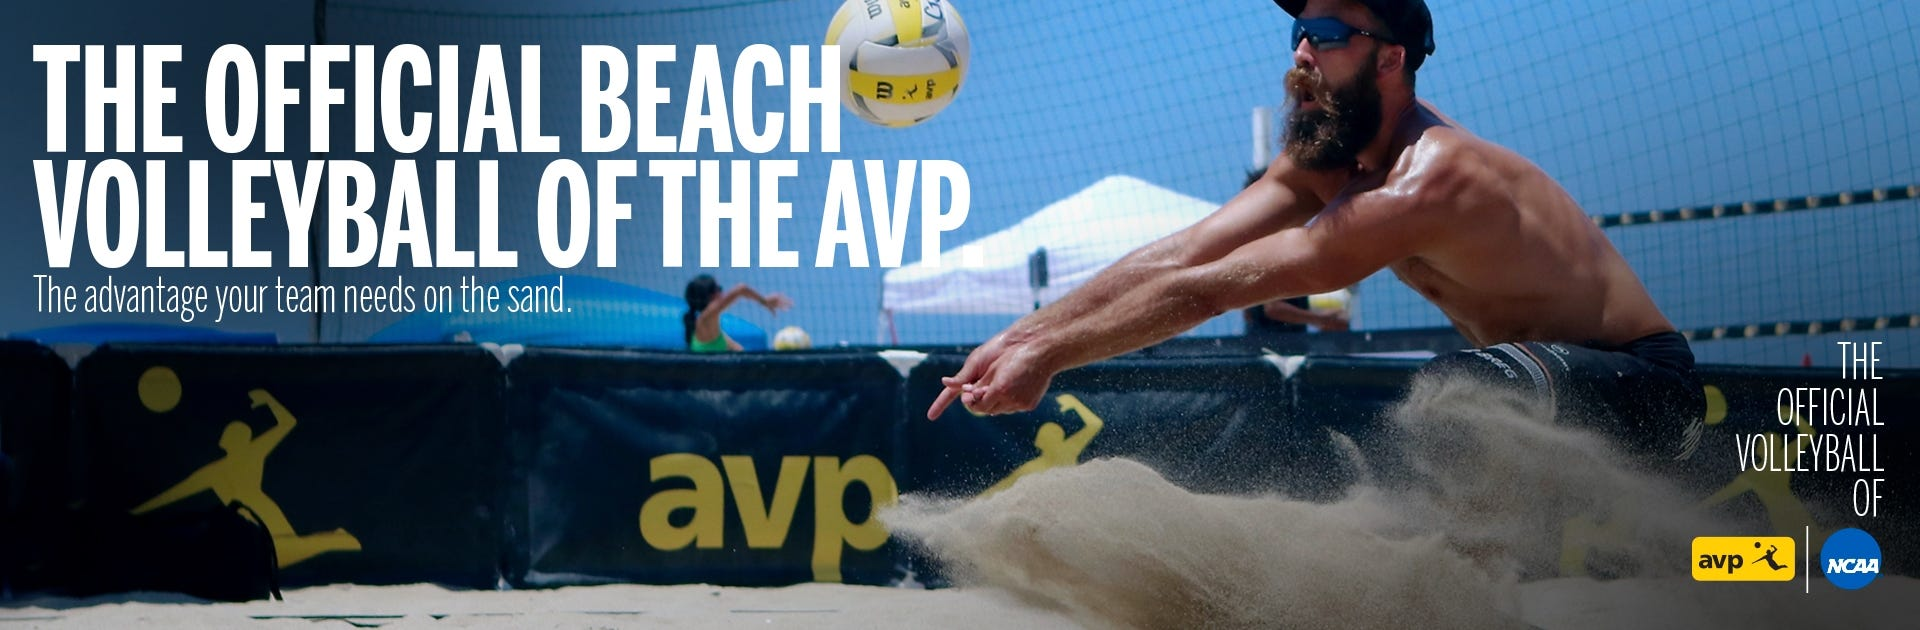 The official ball of AVP beach volleyball